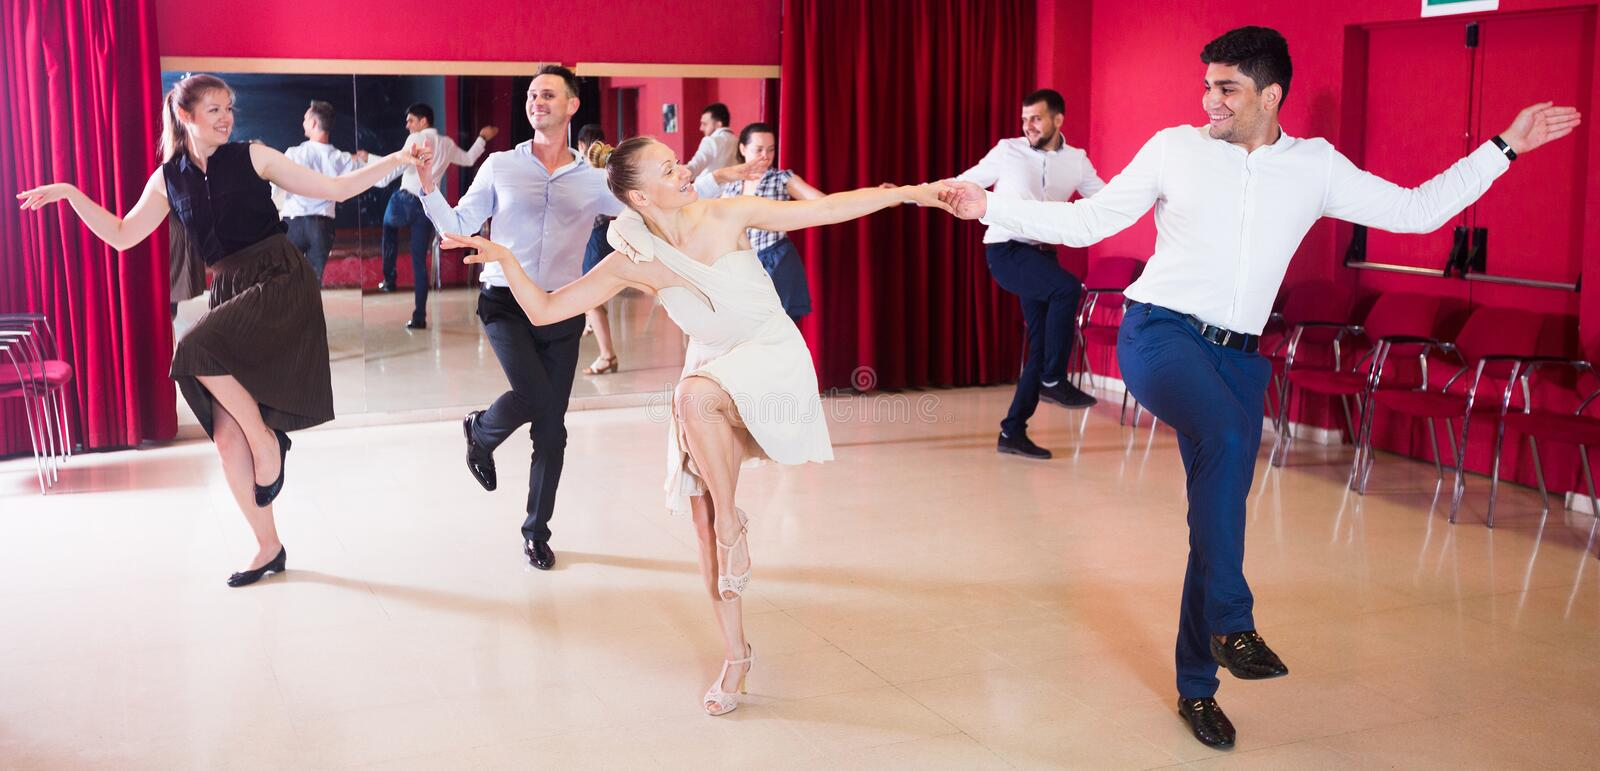 People practicing lindy hop movements stock image